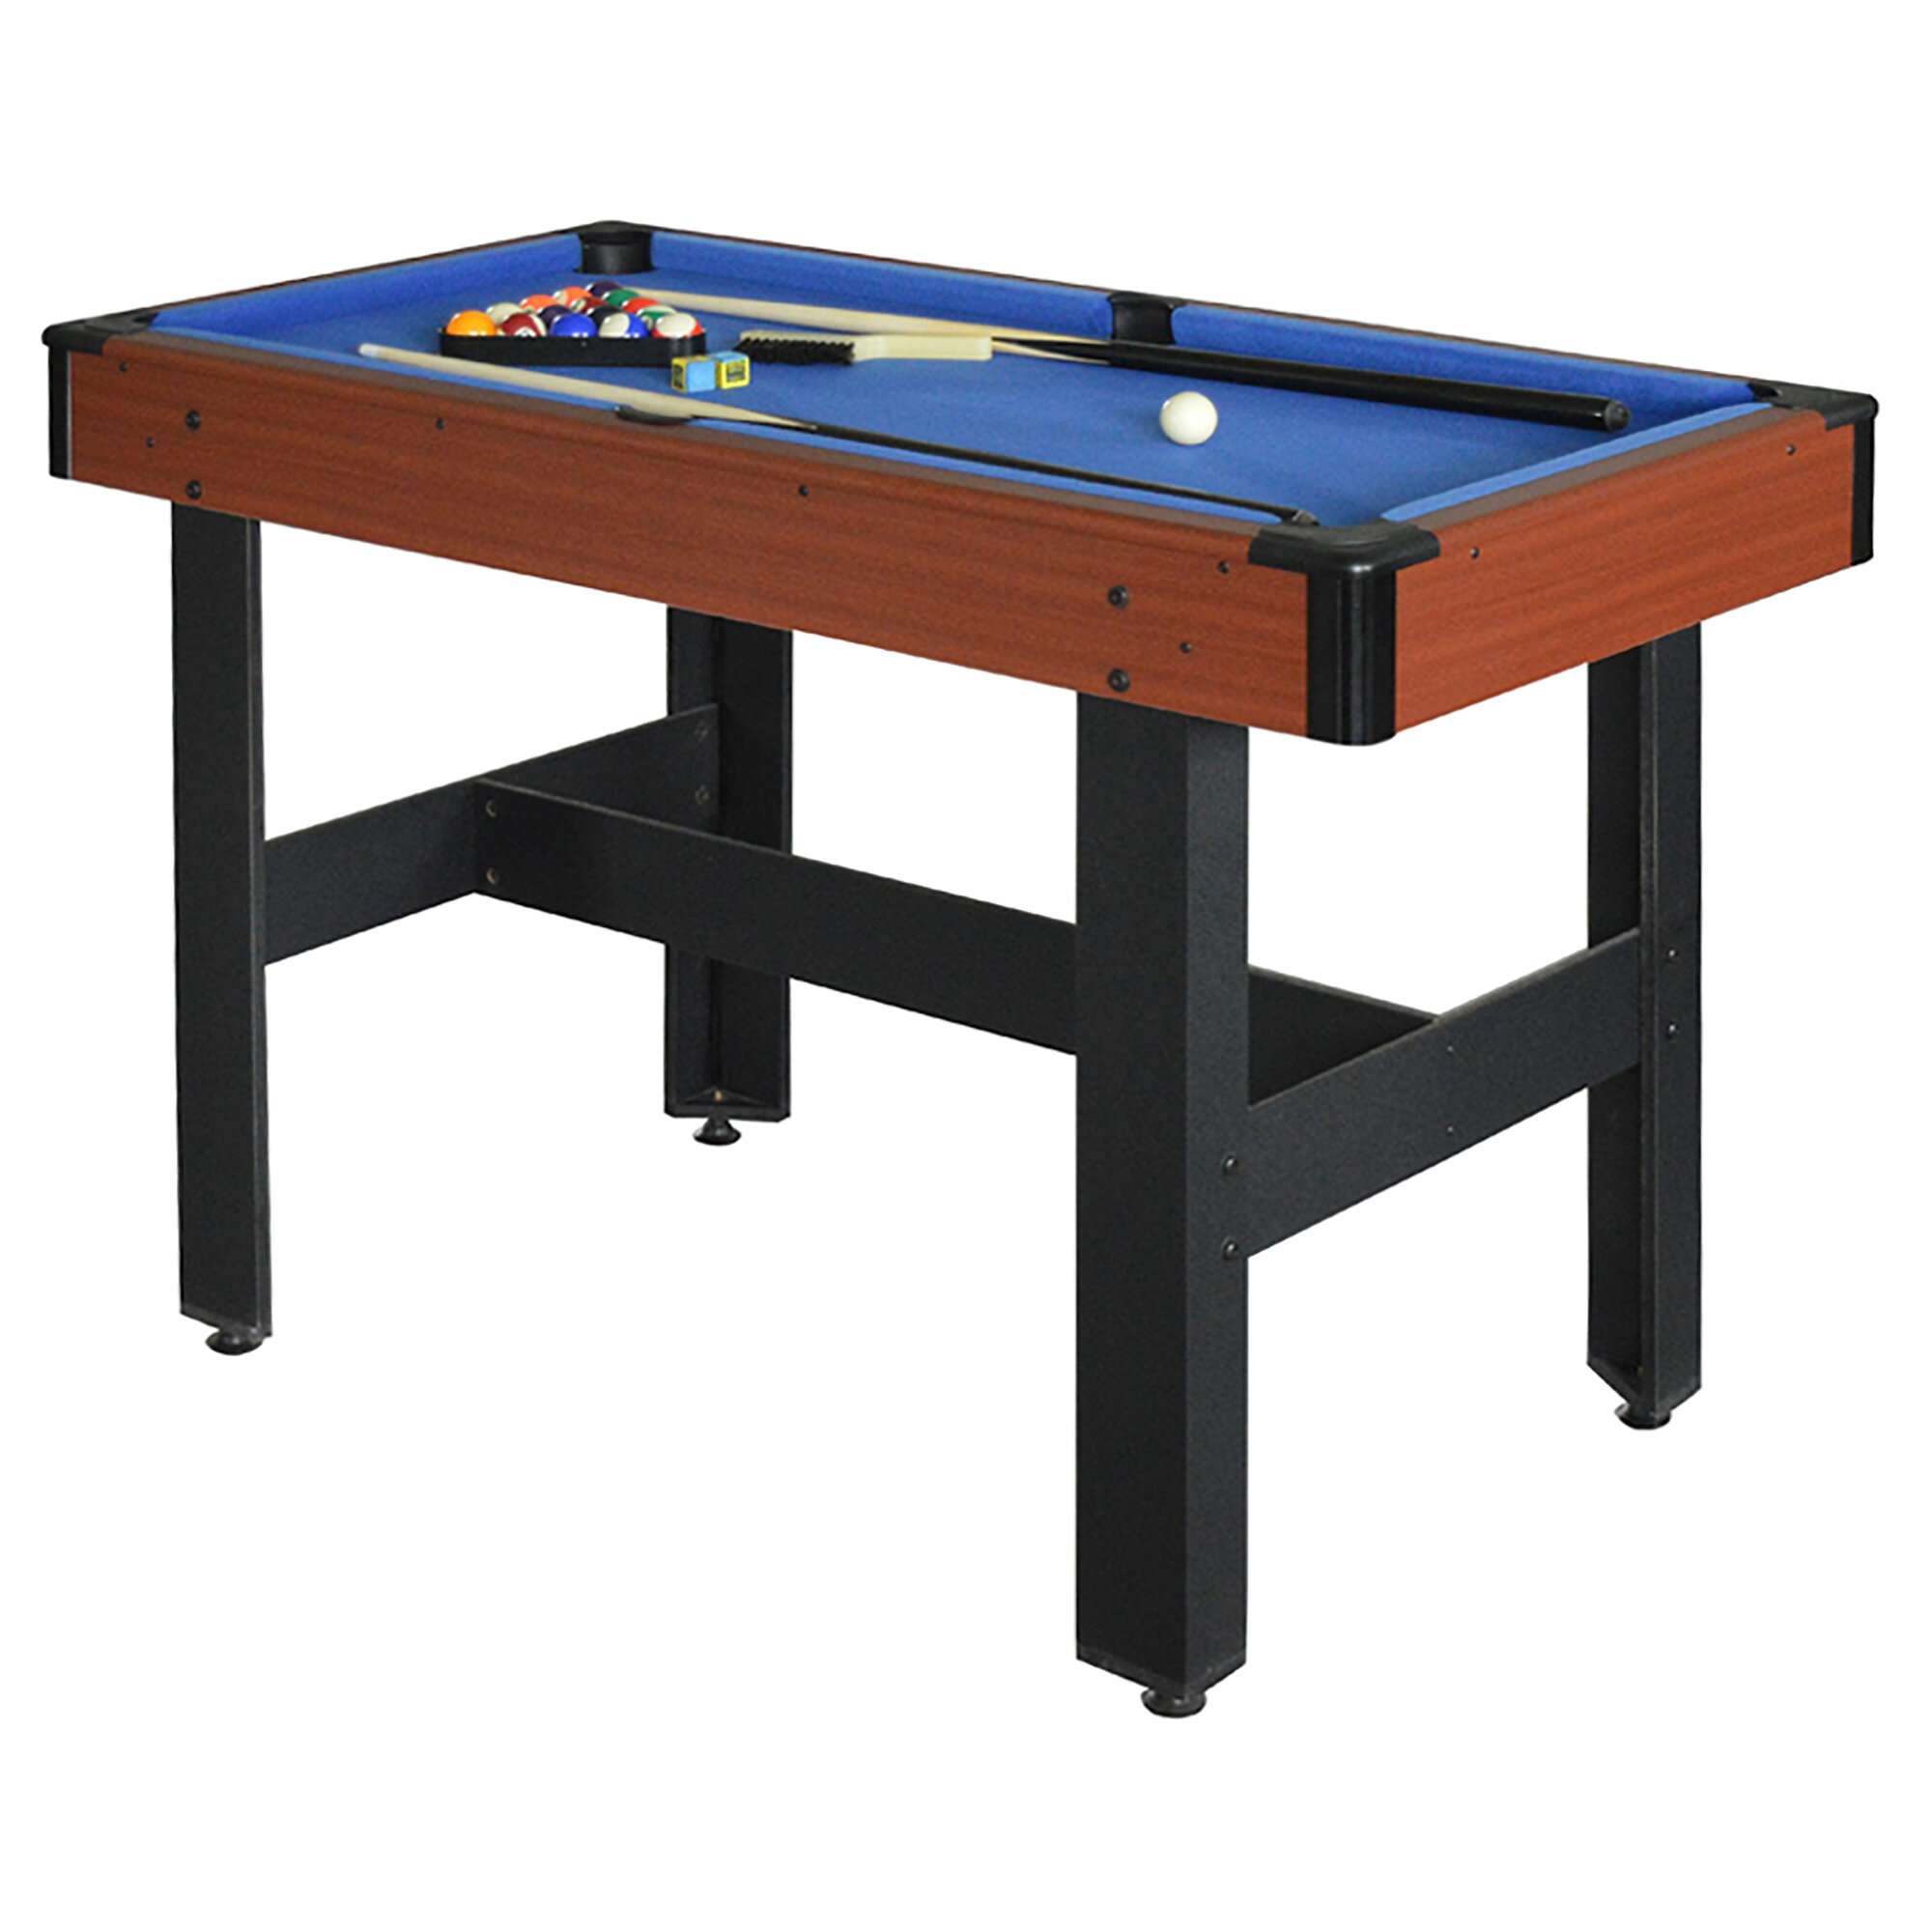 Exceptionnel Hathaway Games Triad 3 In 1 Multi Game Table U0026 Reviews | Wayfair